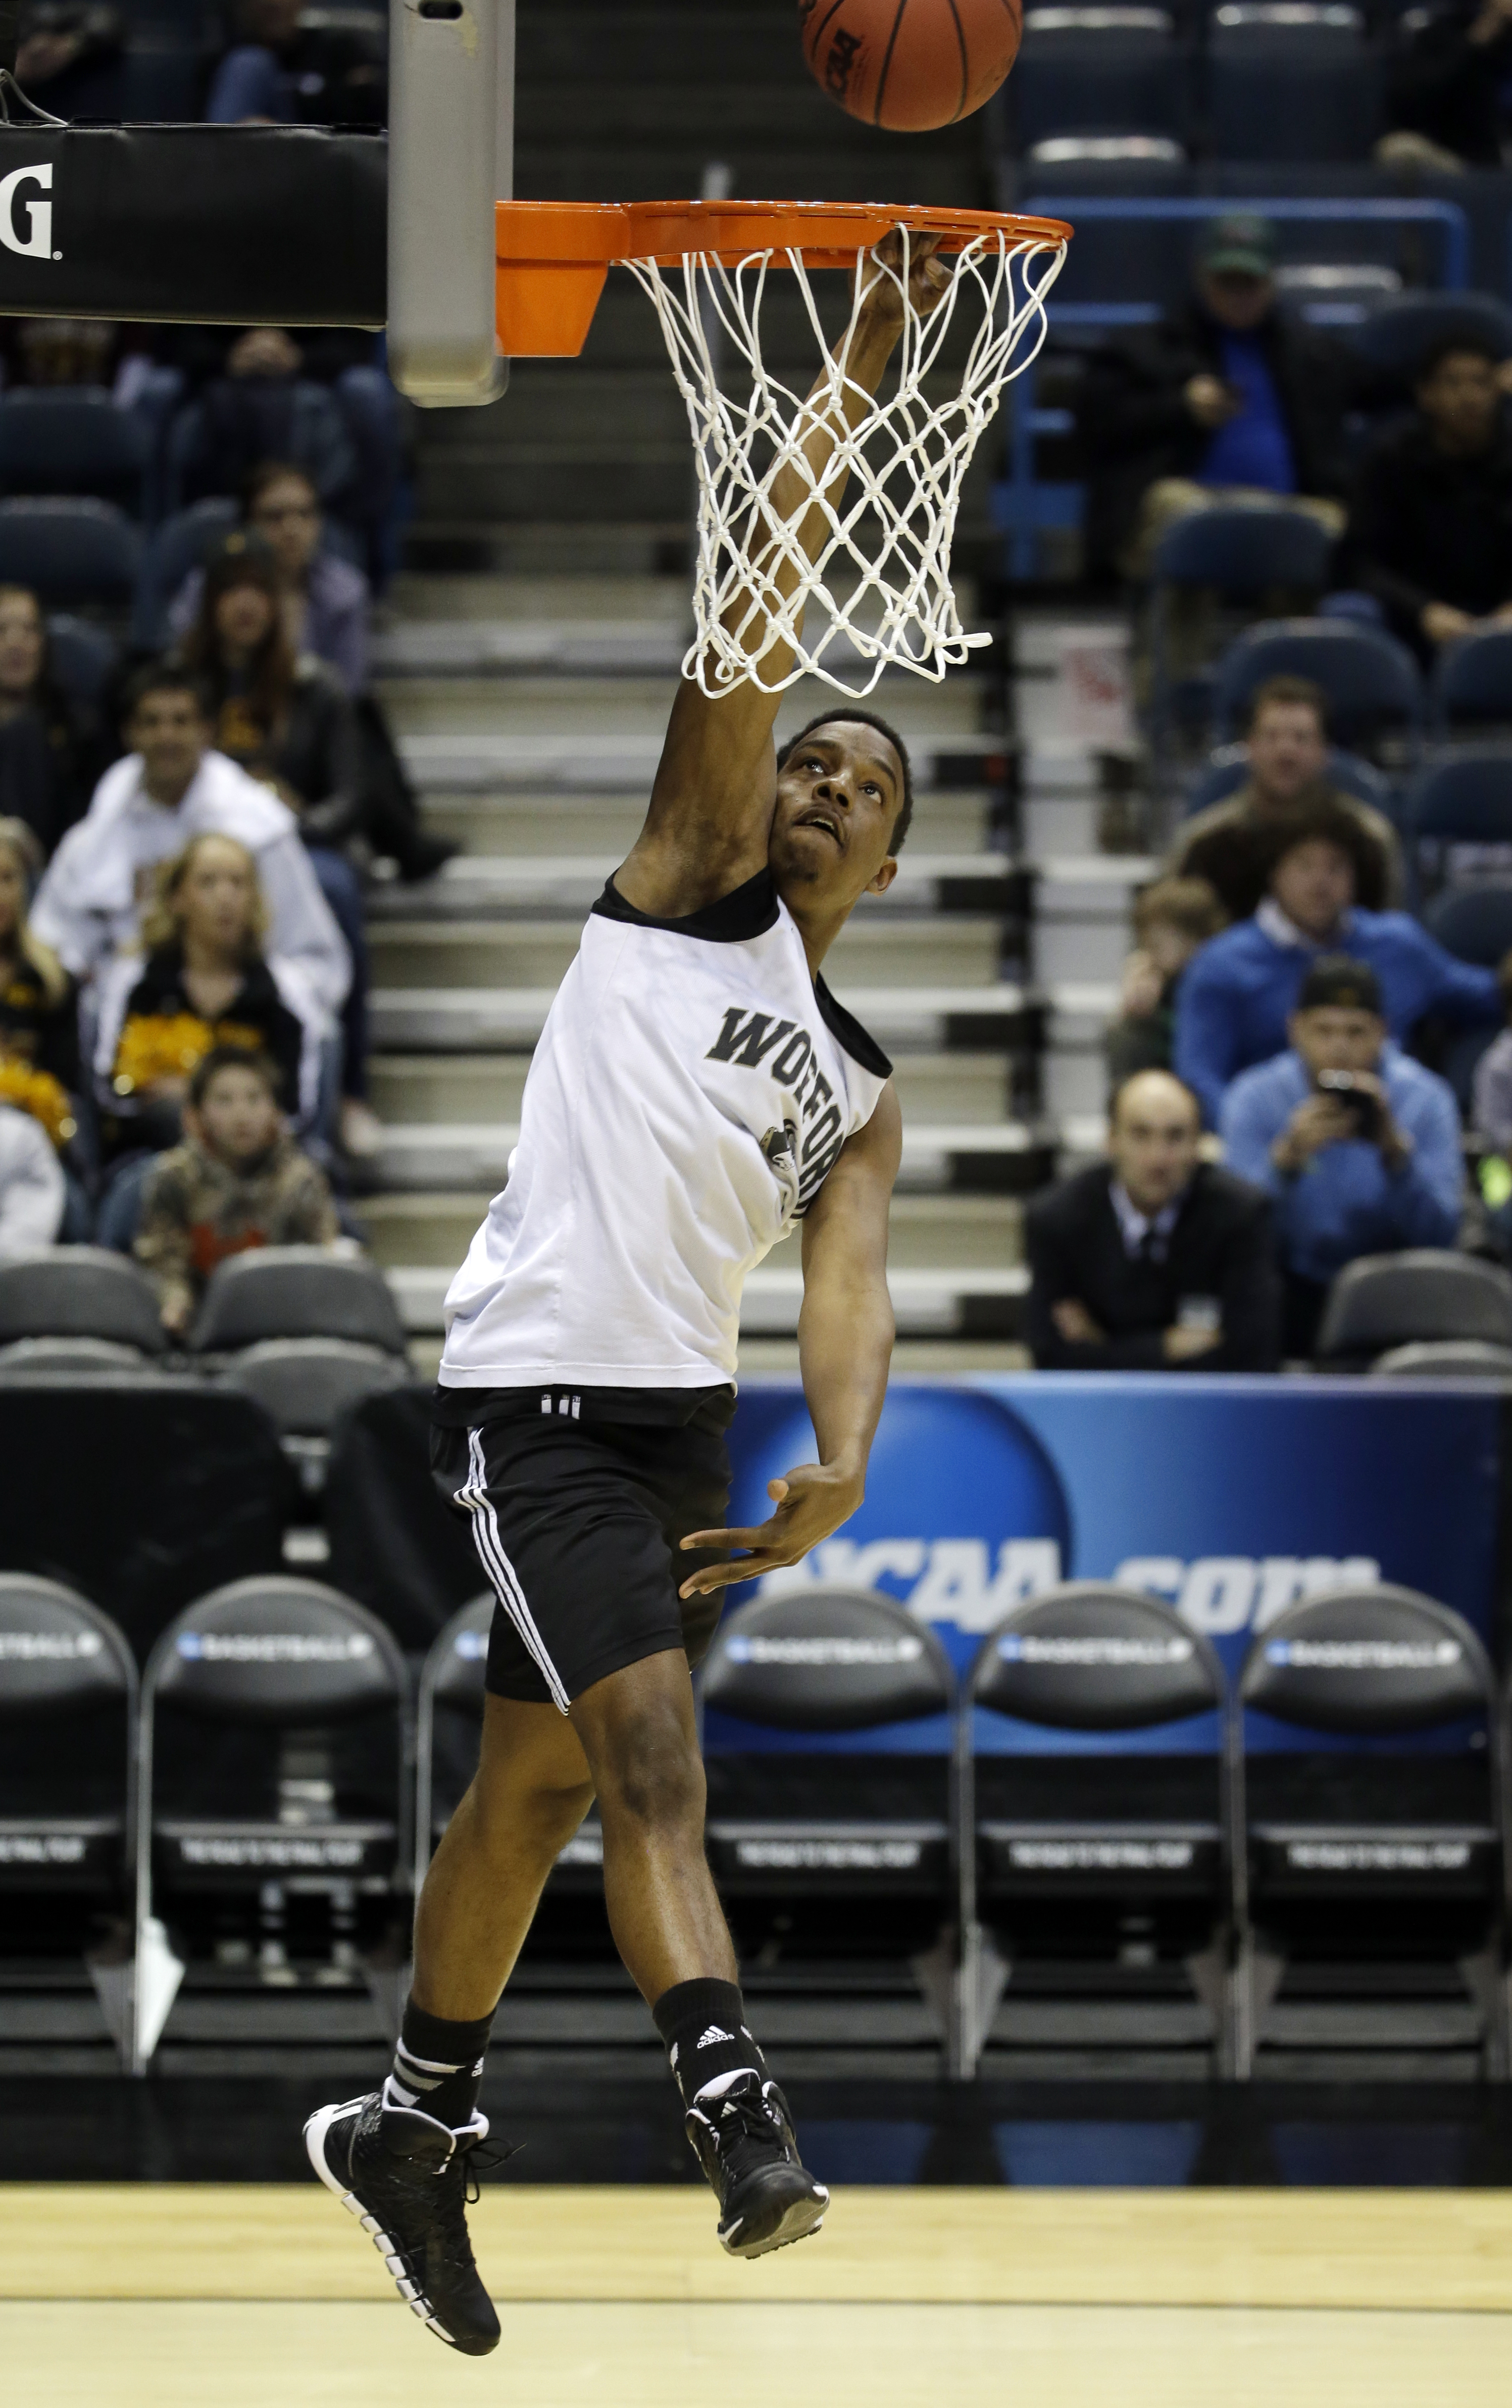 Wofford Basketball Player Jeremiah Tate Drowns Found Dead